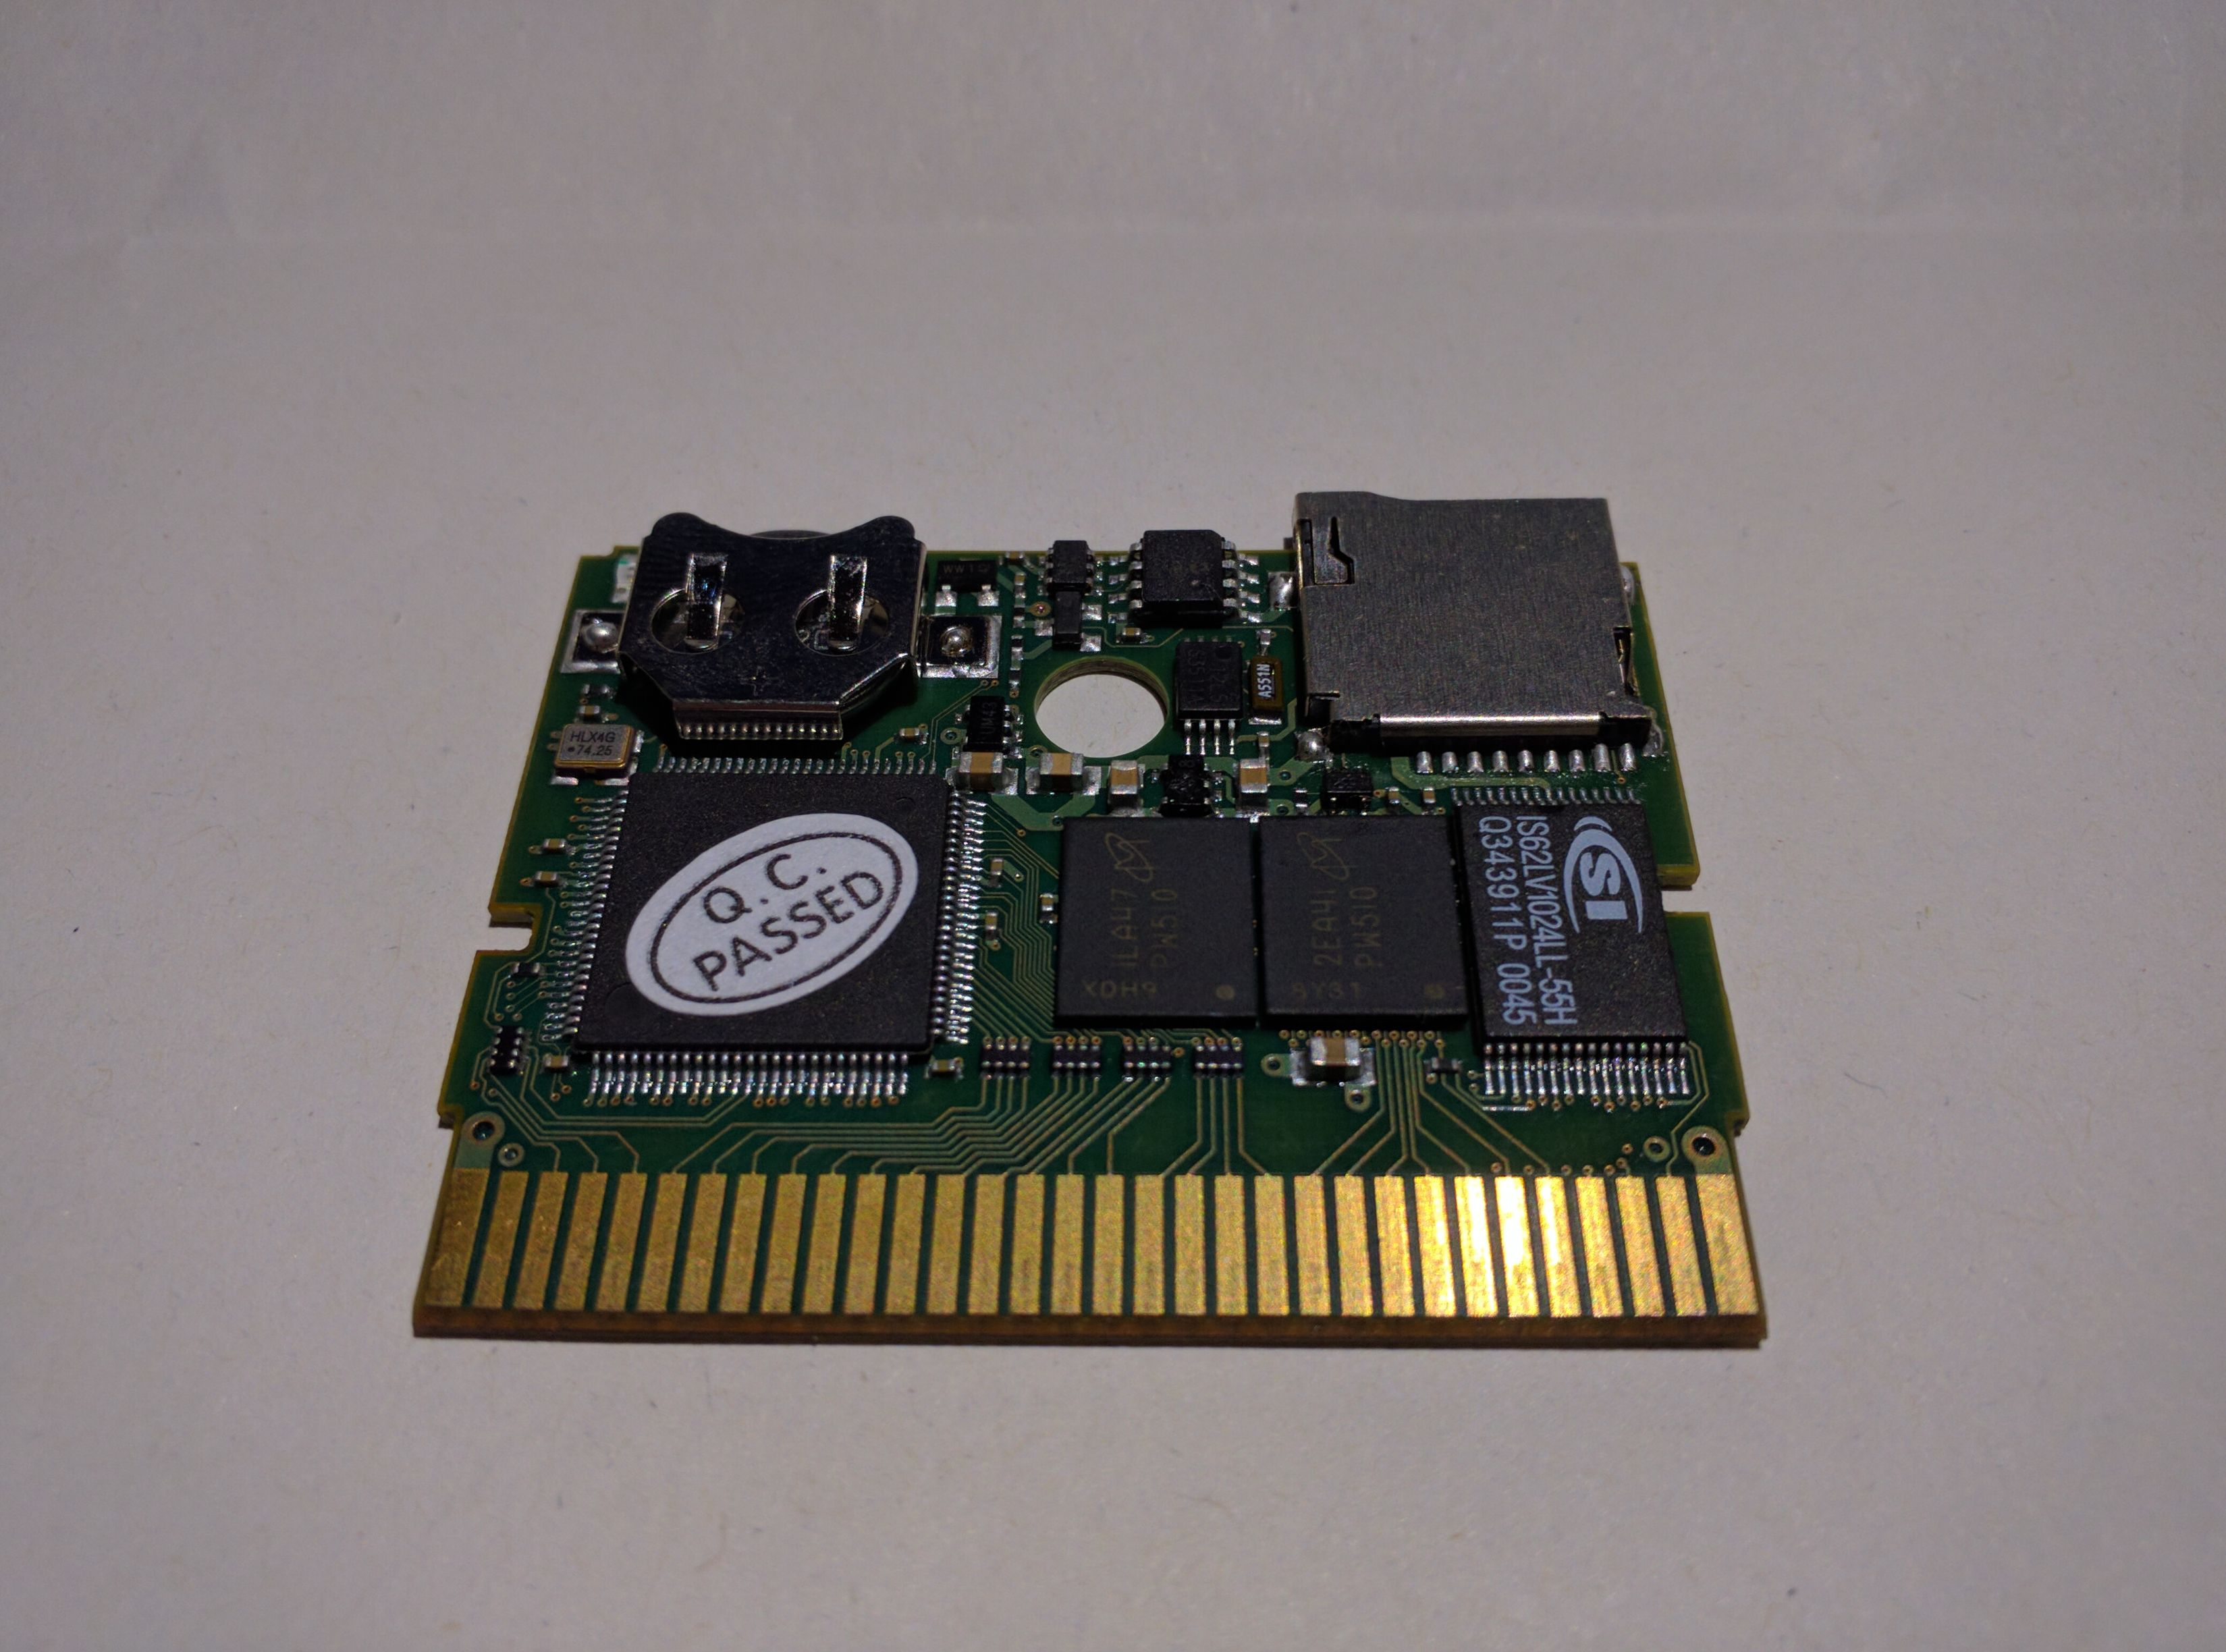 Game boy color everdrive - Attachthumb58617